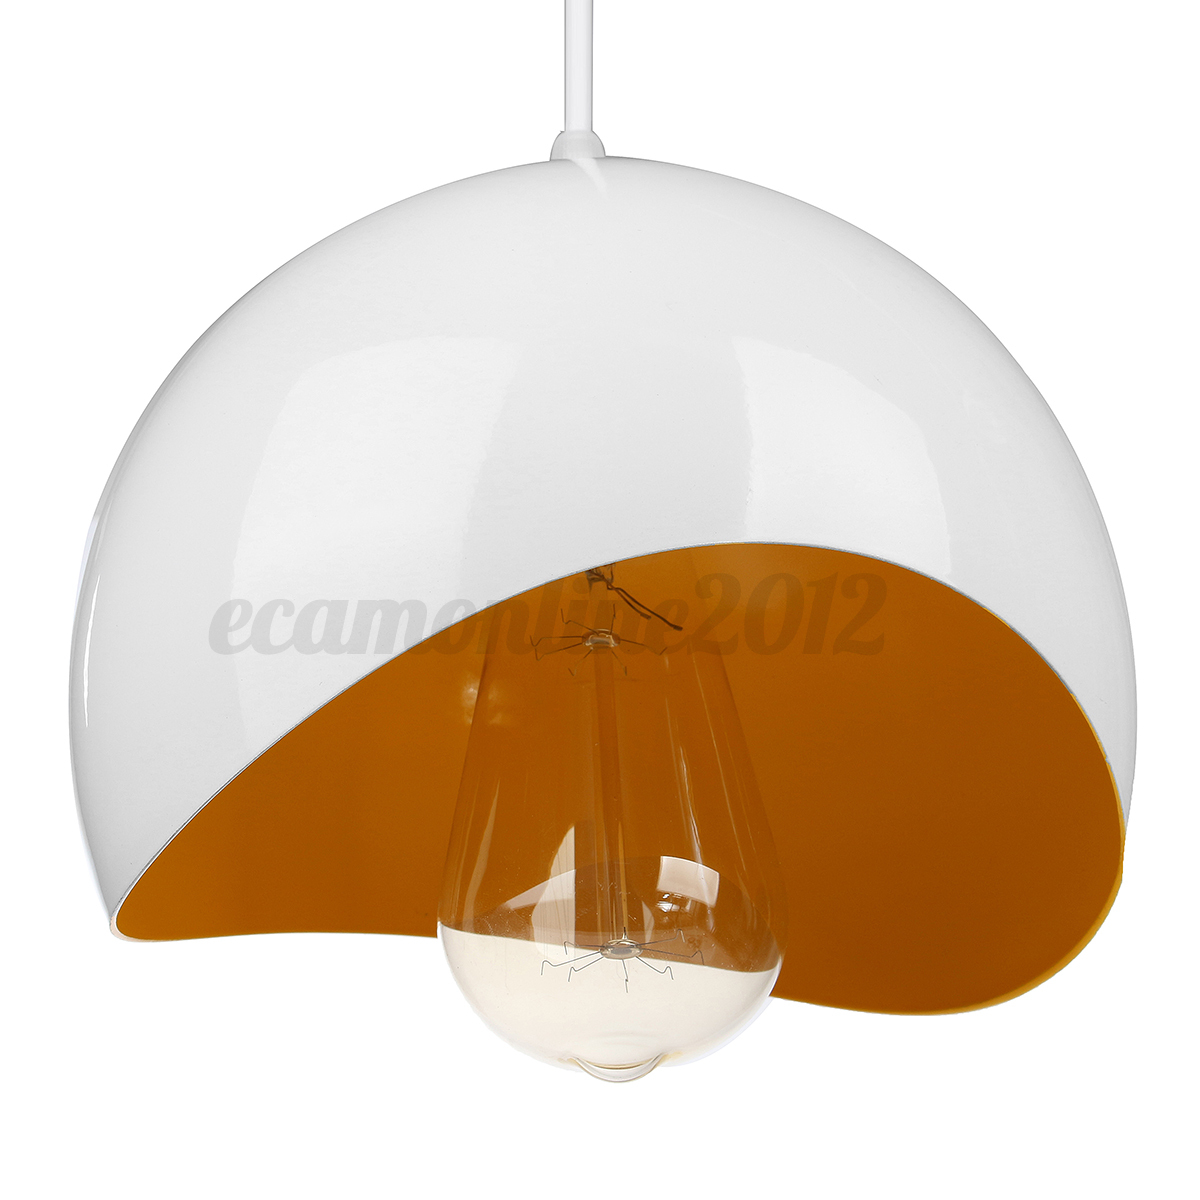 Dome Ceiling Lights: Modern Dome Retro Ceiling Pendant Light Lamp Shade